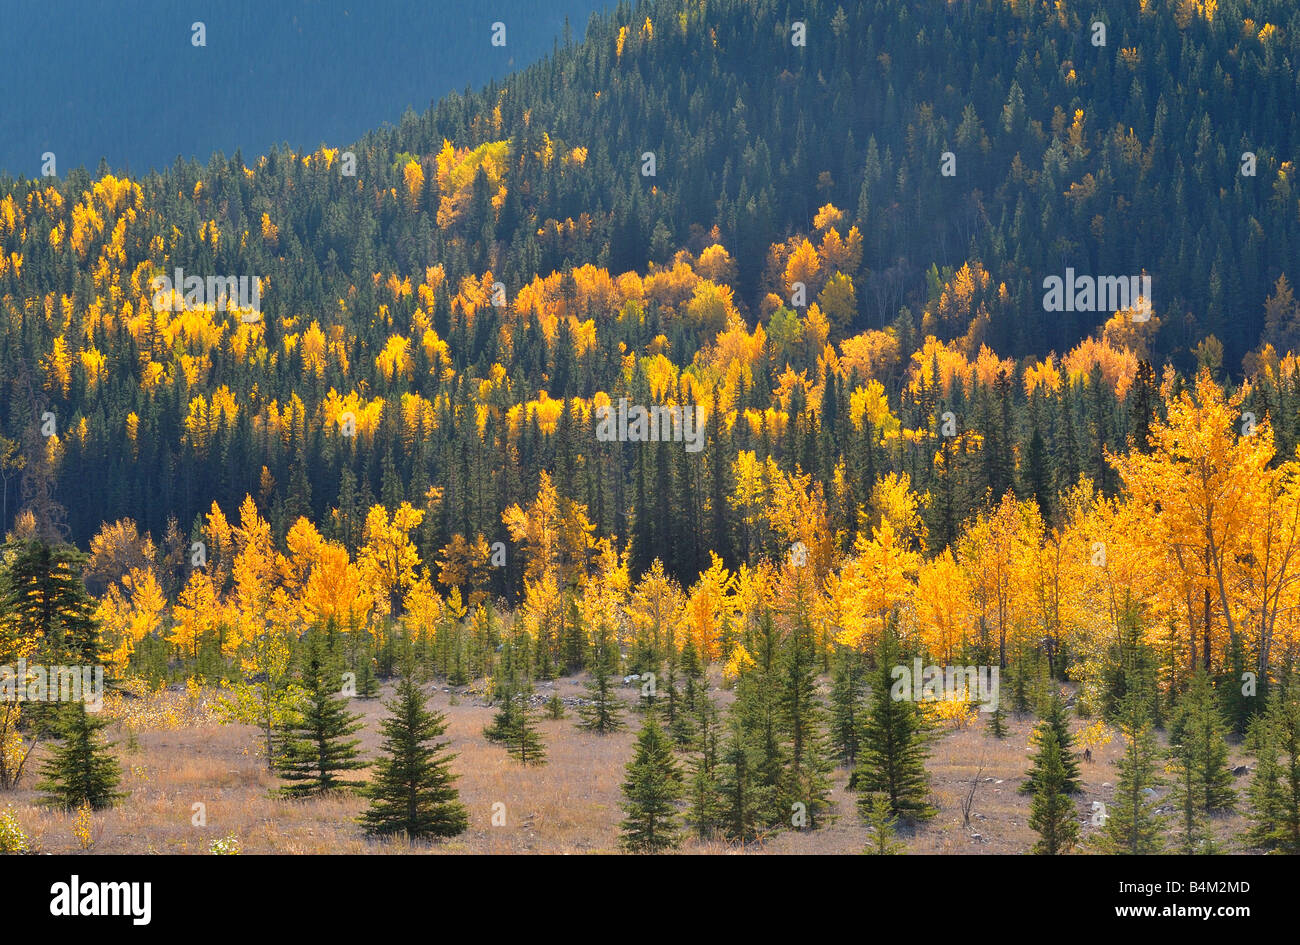 Mixed forest 0801 - Stock Image